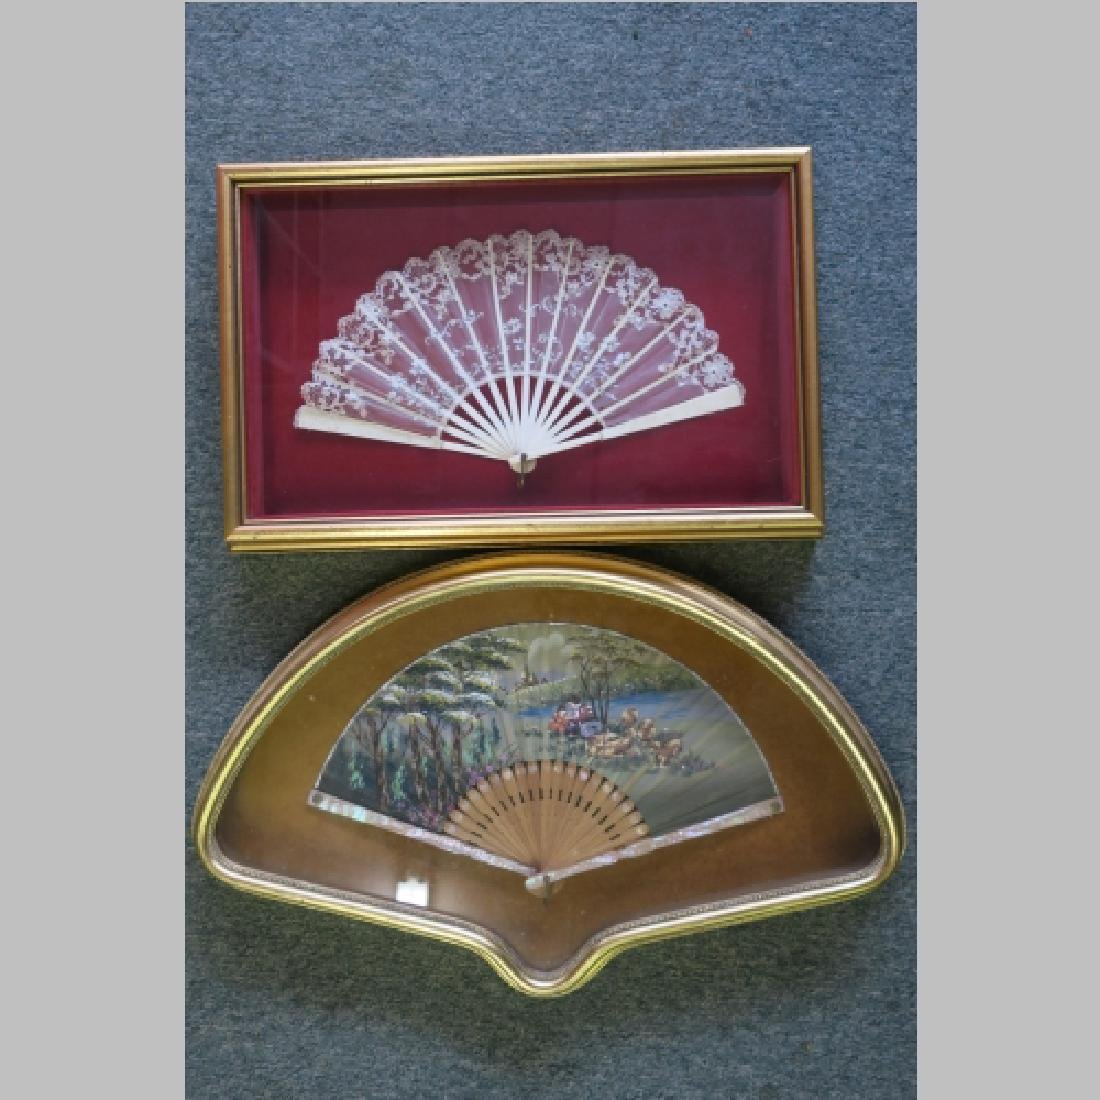 2 Vintage Hand Painted Fans in Shadow Boxes: